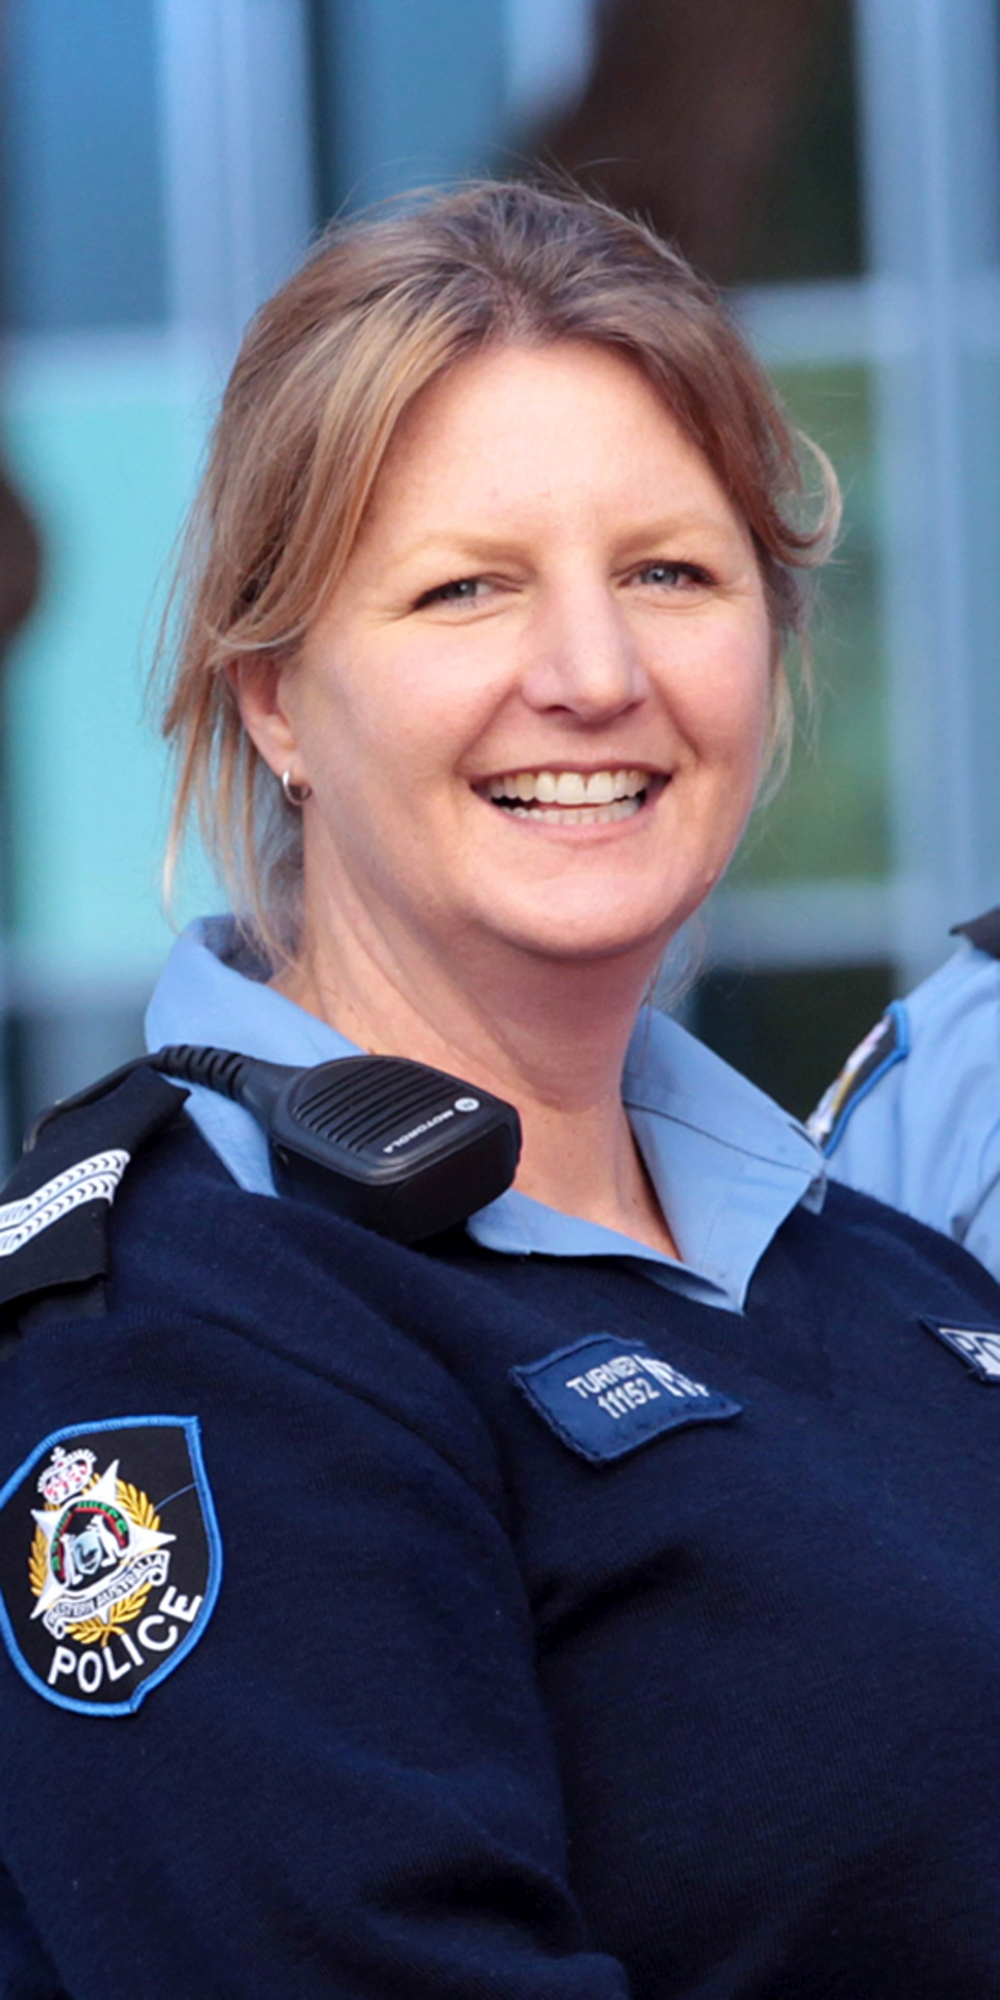 Armadale Police youth crime intervention officer Kay Turner.